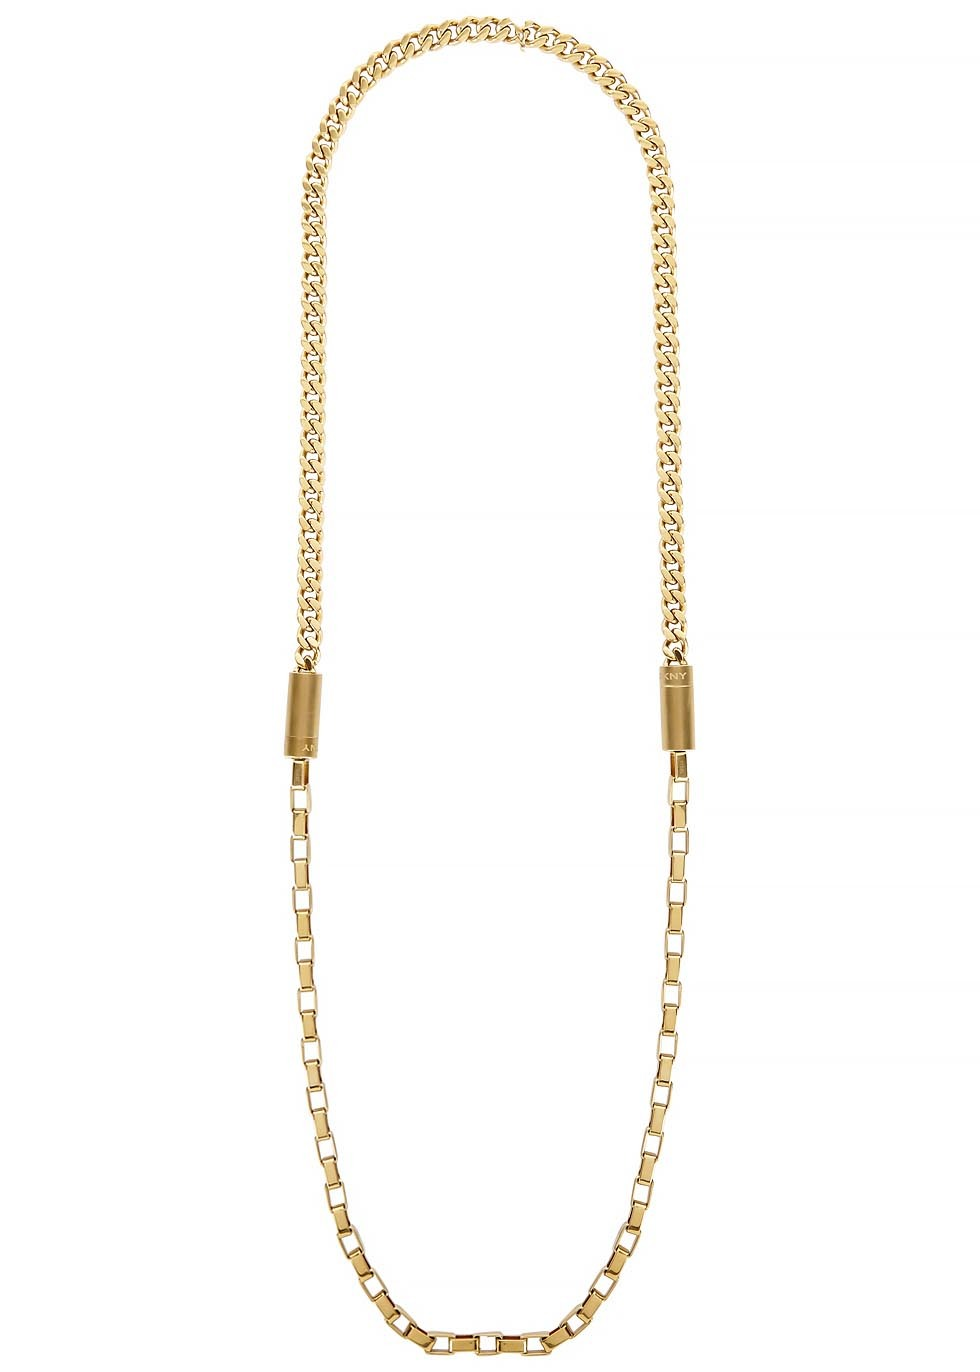 Chambers Gold Tone Necklace - predominant colour: gold; occasions: casual, evening, occasion, creative work; length: long; size: standard; material: chain/metal; finish: metallic; season: s/s 2015; wardrobe: basic; style: chain (no pendant)